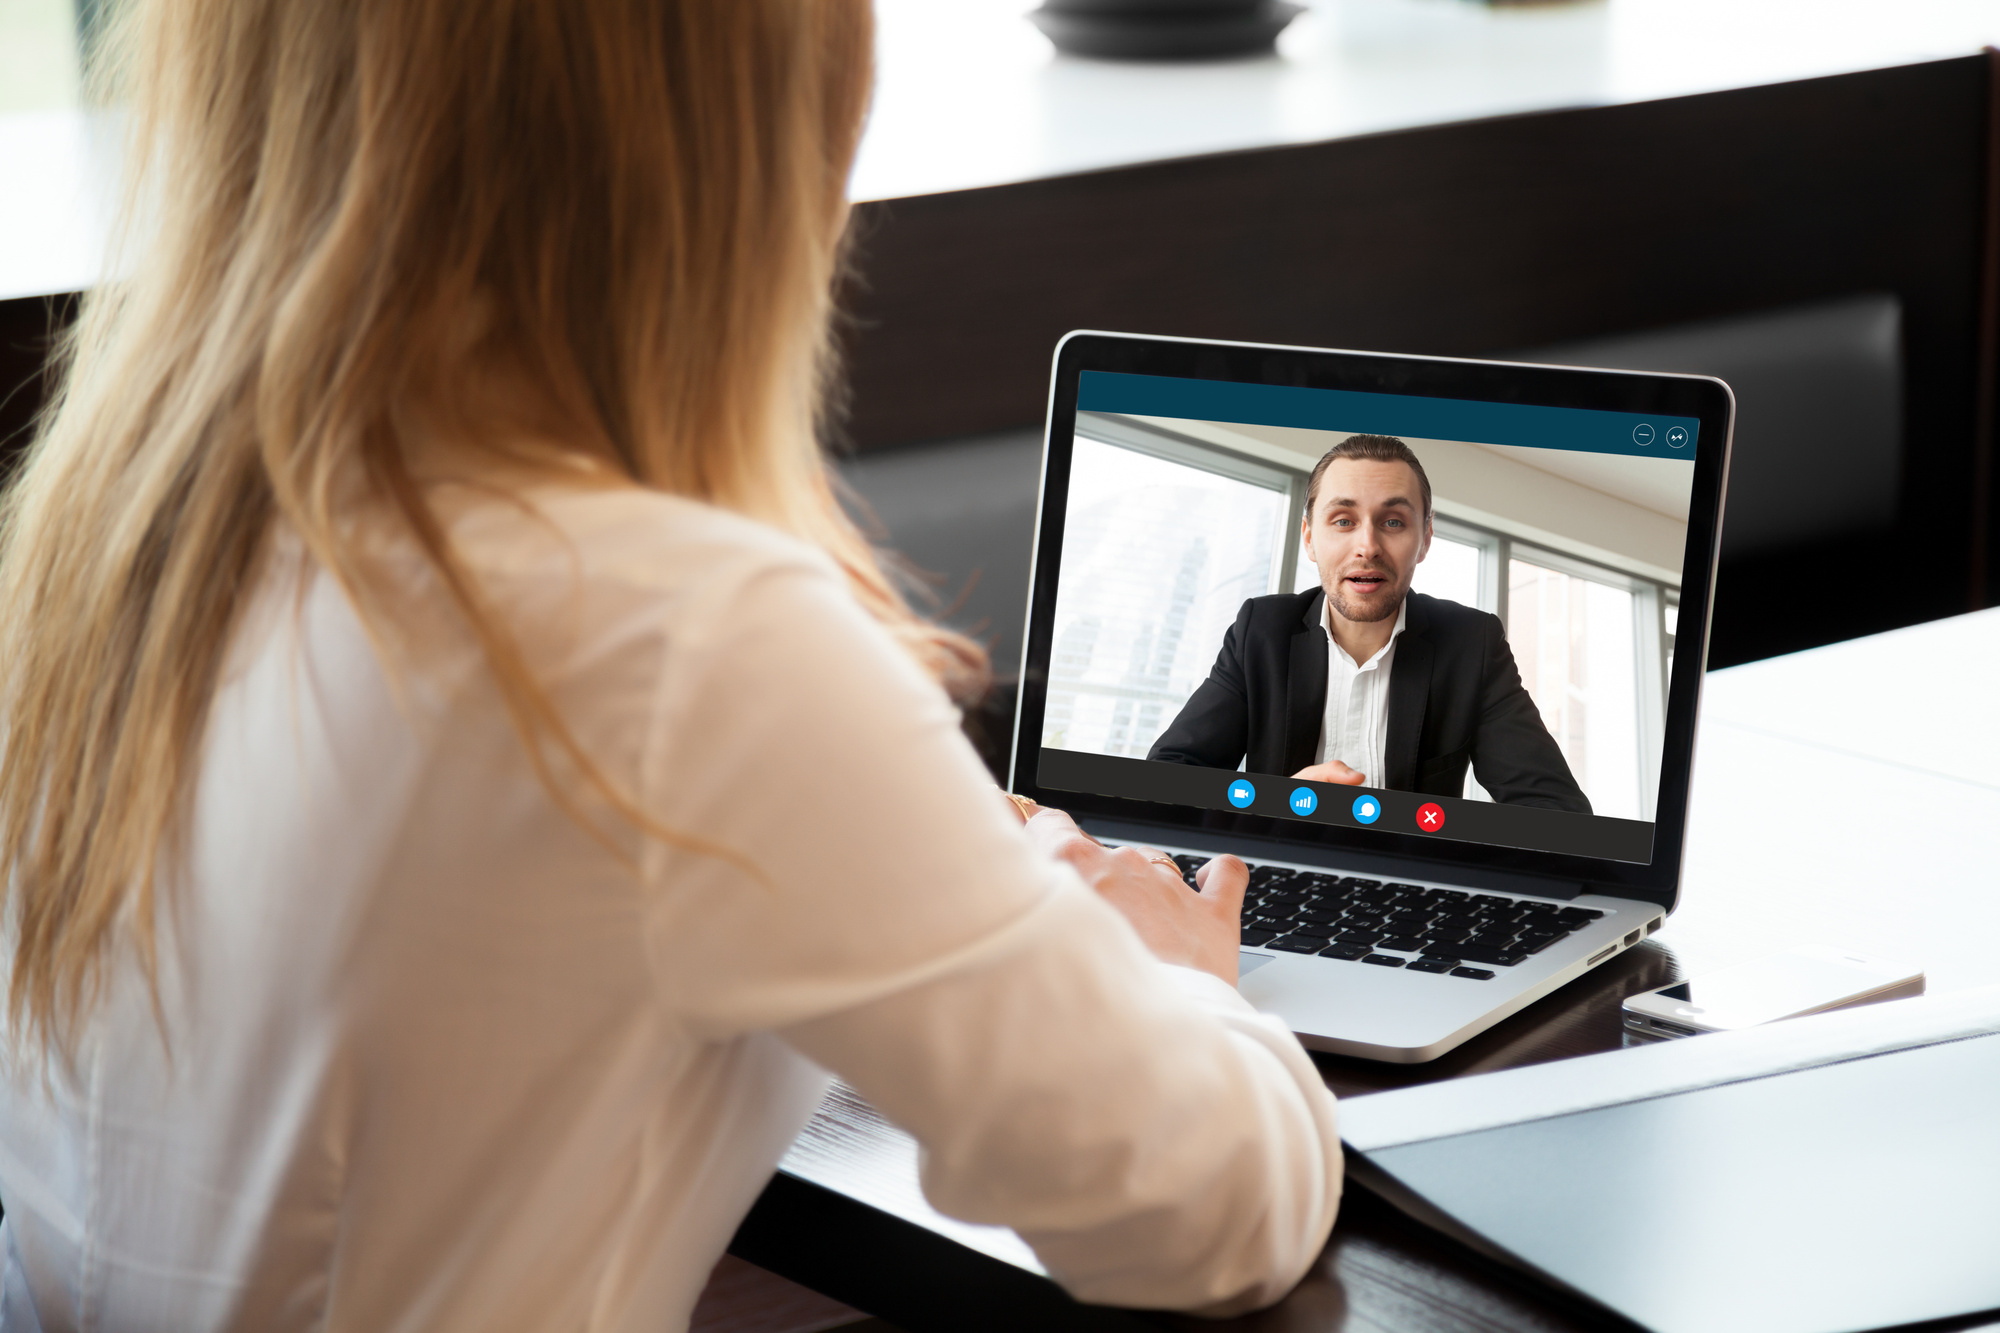 Don't Miss Anymore Meetings! ZOOM Has You Covered